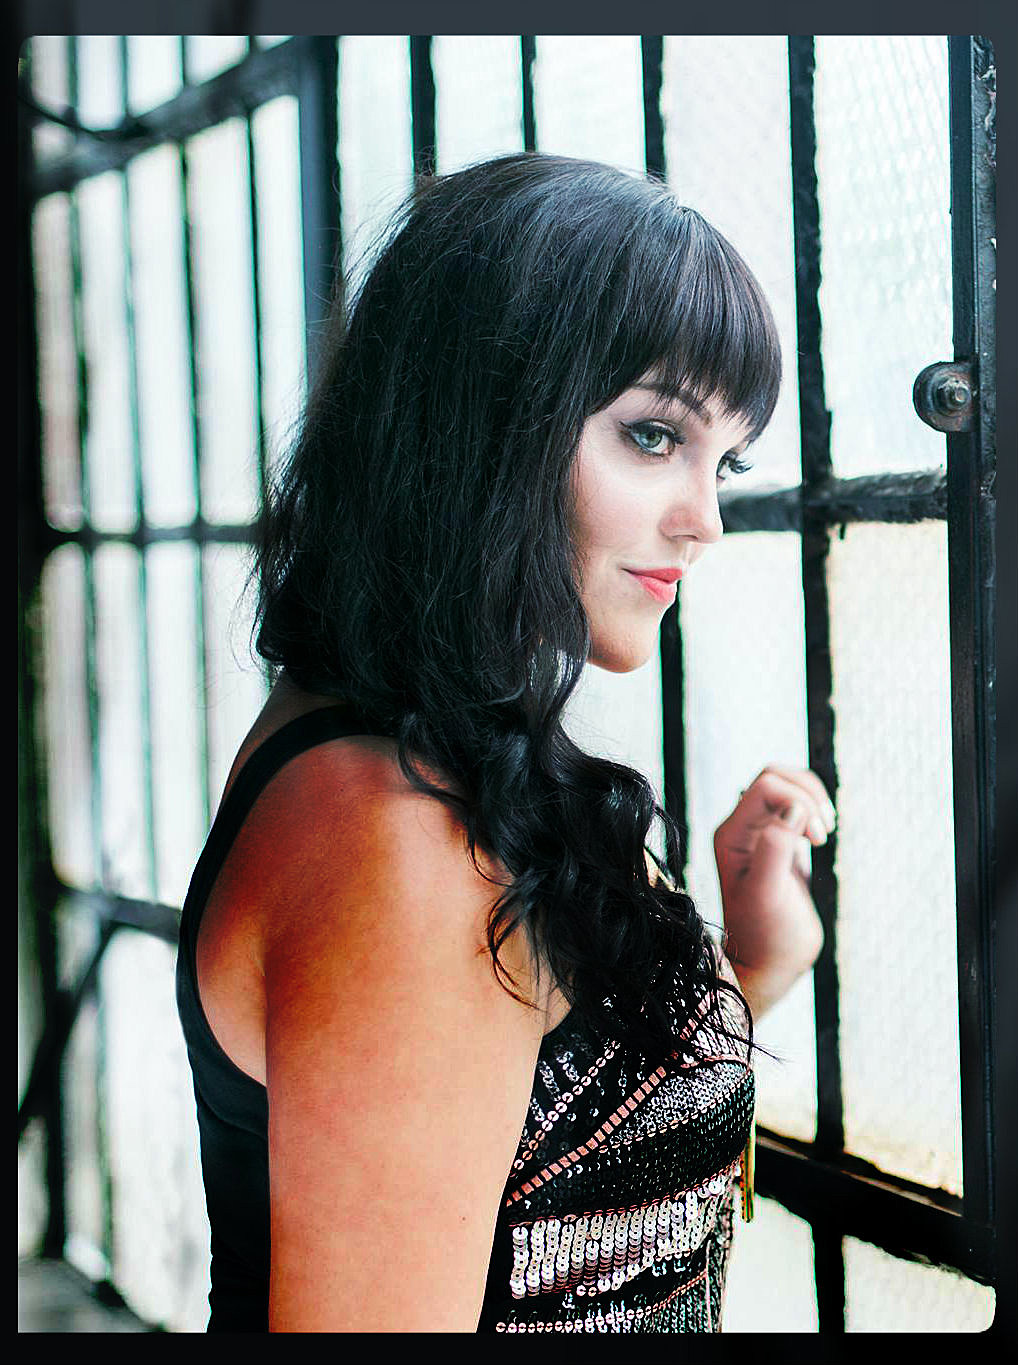 www.facebook.com/pg/HeidiRayeMusic/photos